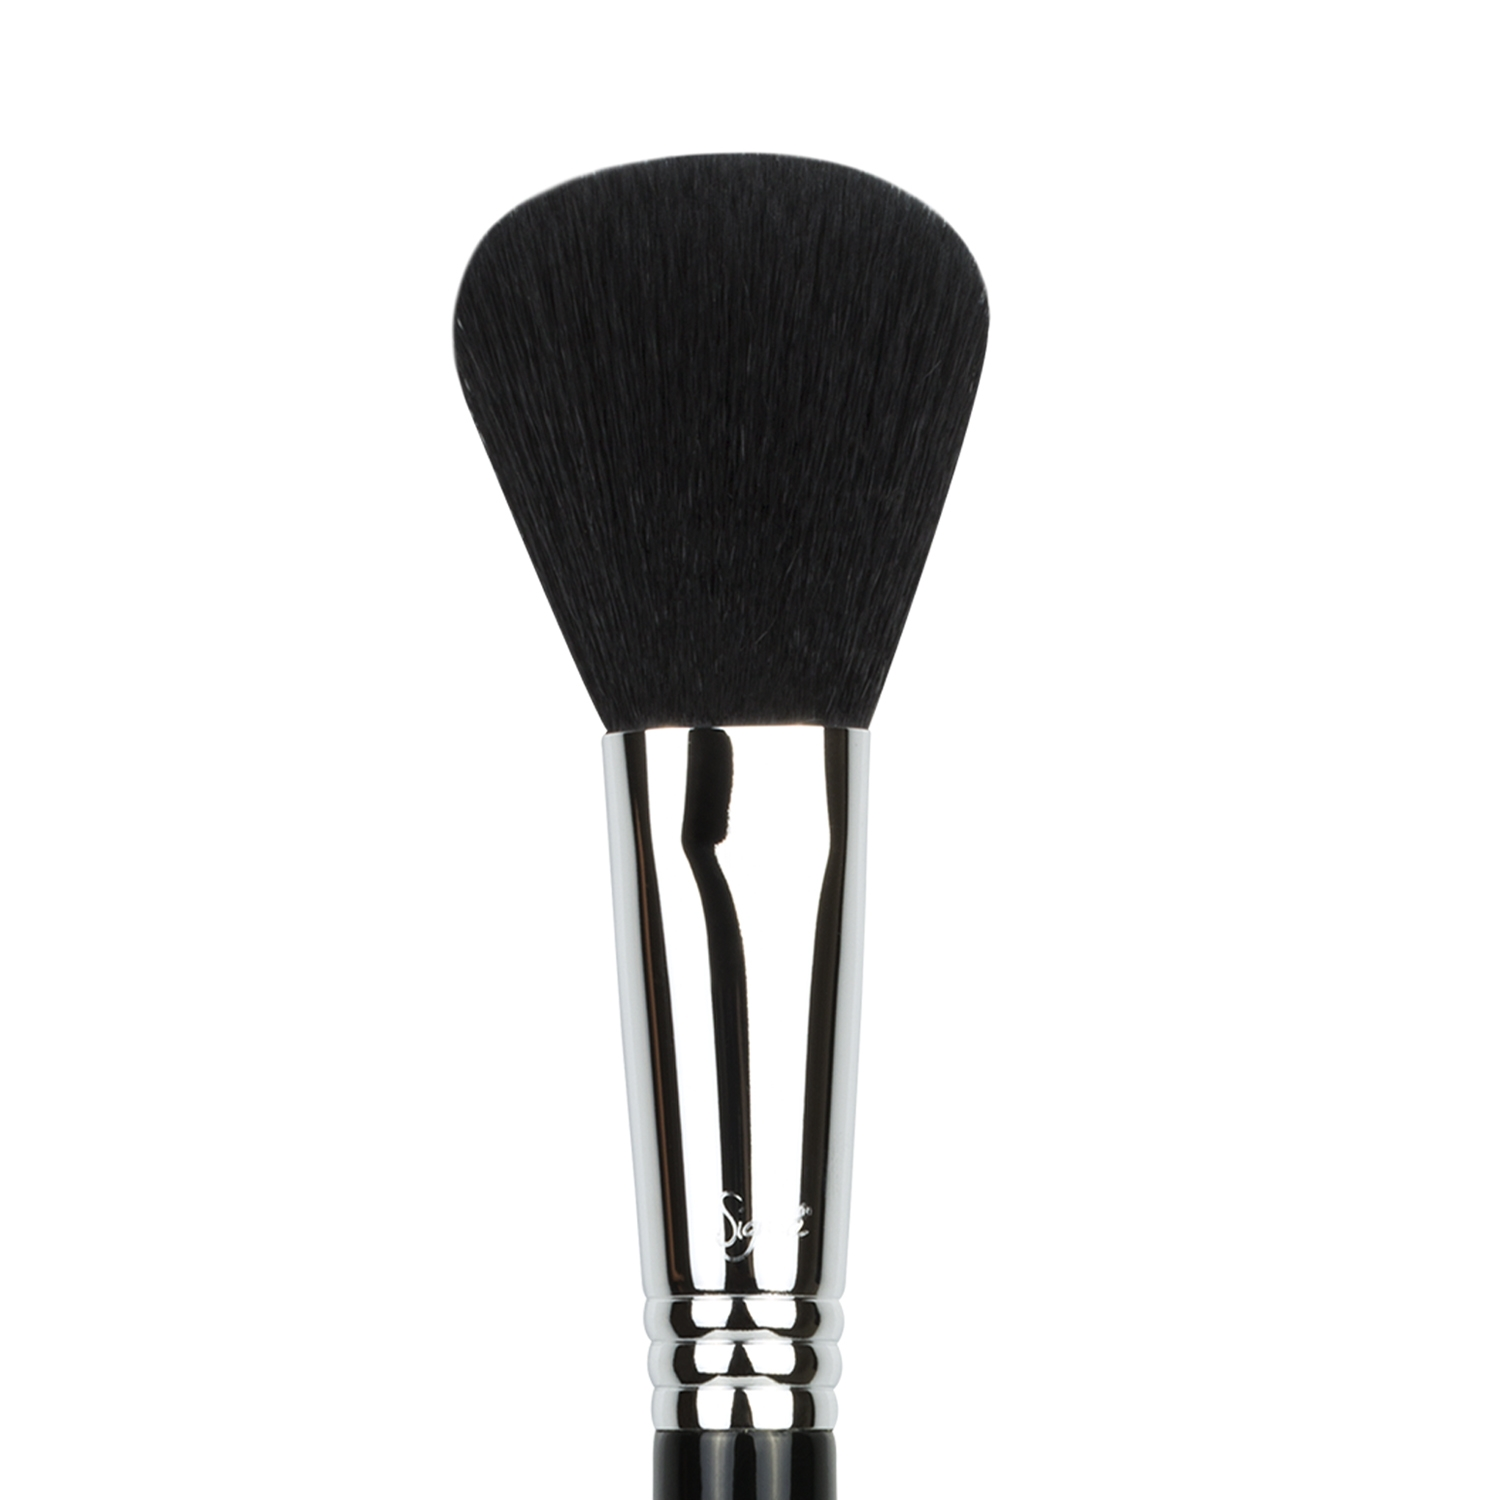 coastal scents brushes uses. blush/bronzer/powder brush\u2013in all honesty, you could use the same brush for 3 of these things if just kind wiped it off with a tissue often. coastal scents brushes uses